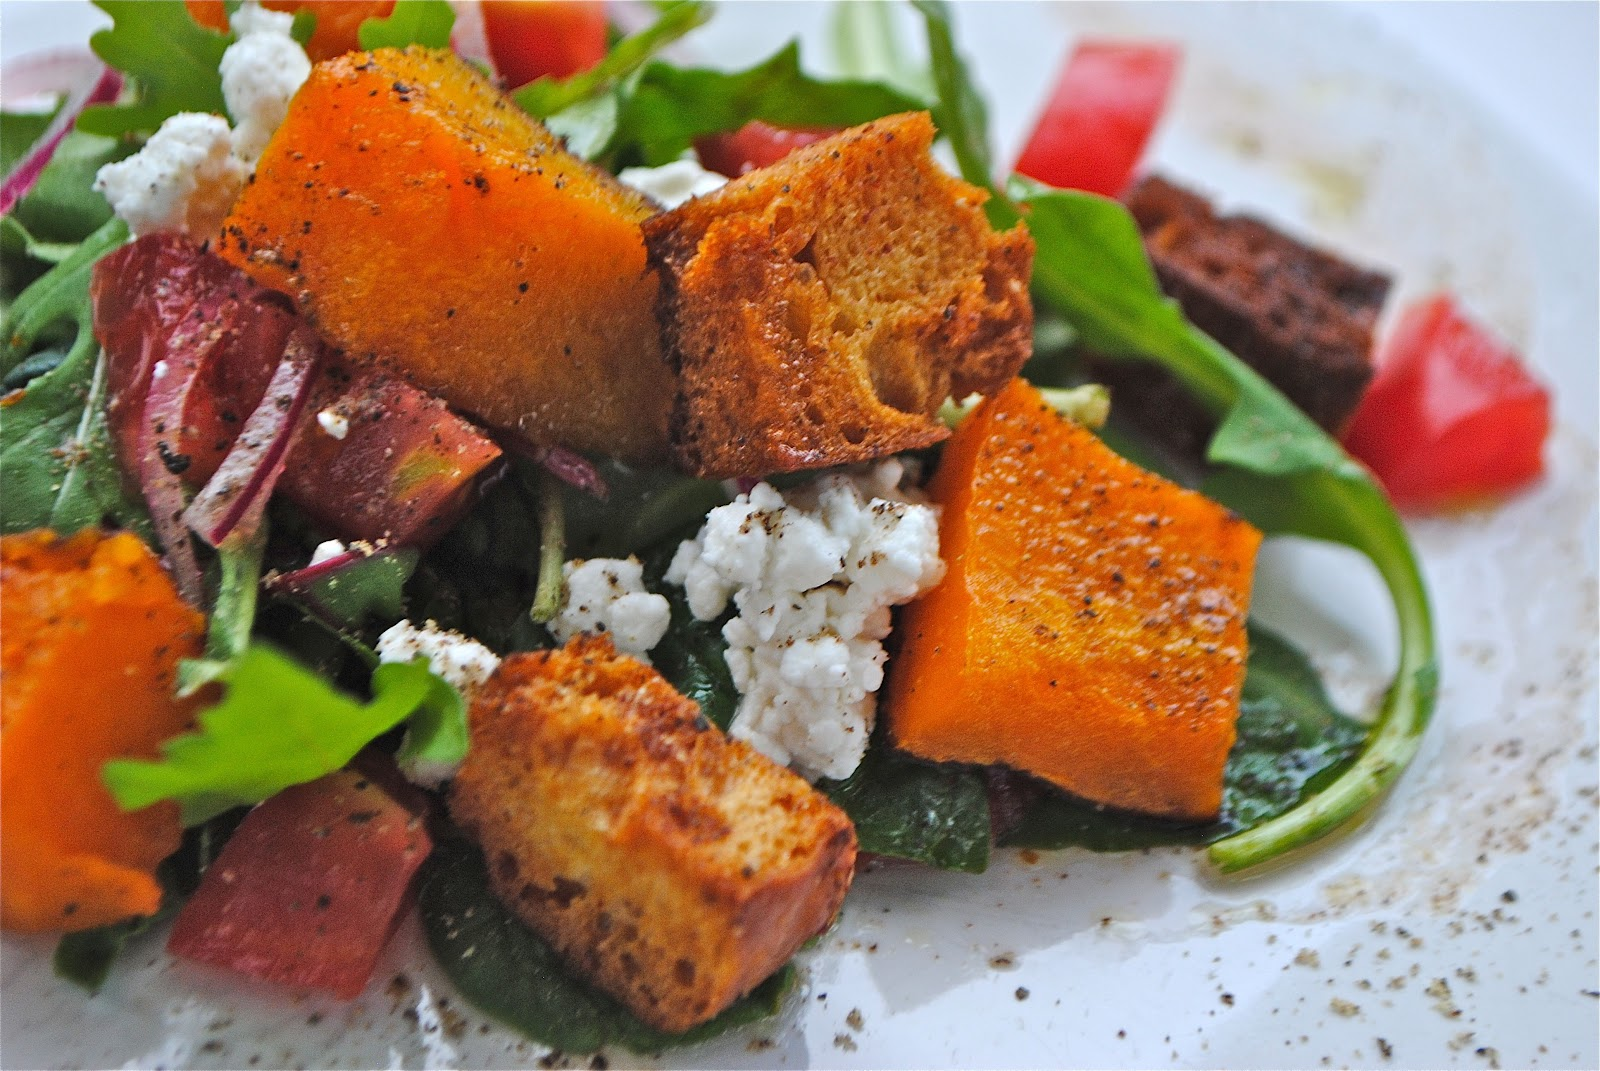 how to make croutons from sliced bread in oven